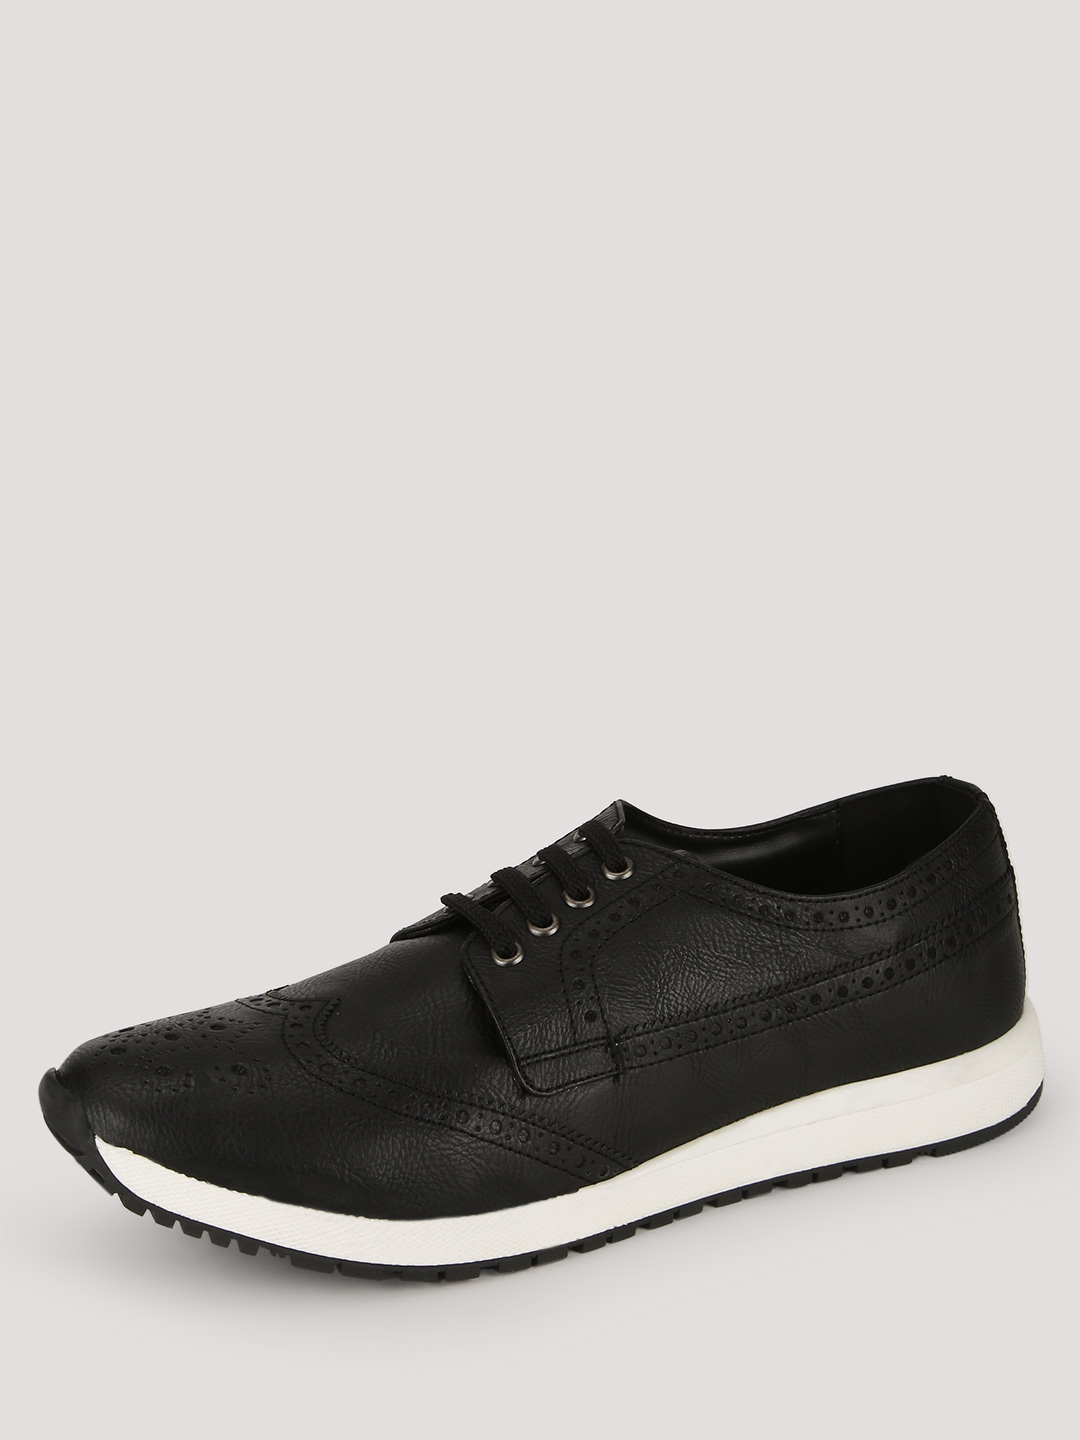 Knotty Derby Black Wing Cap Brogue Trainers 1